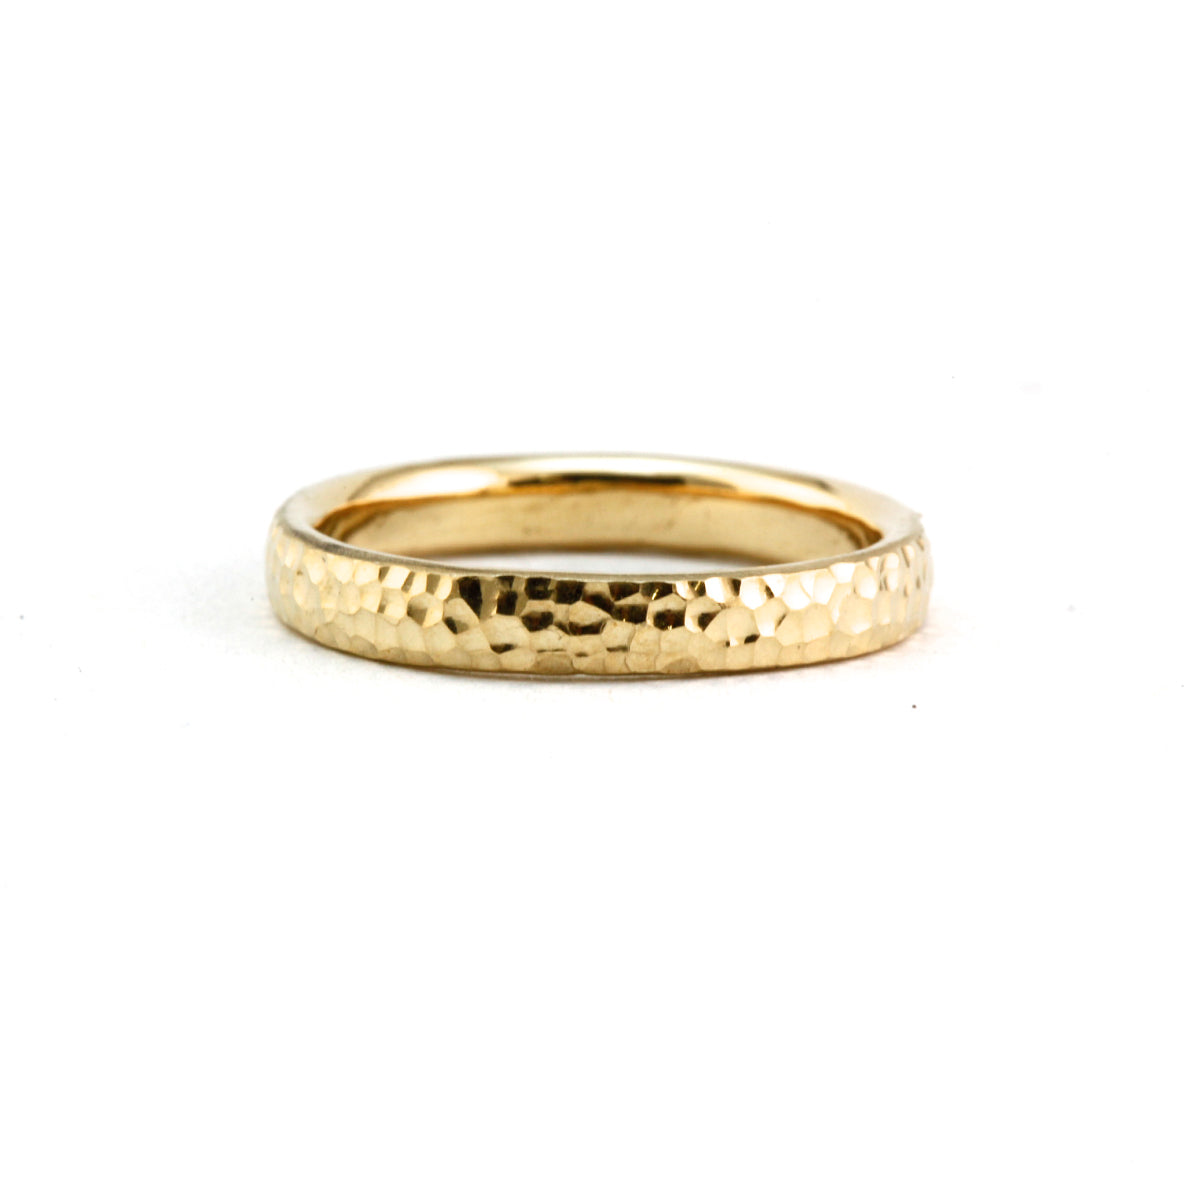 Bespoke textured 18ct yellow gold mens wedding band made in Melbourne.